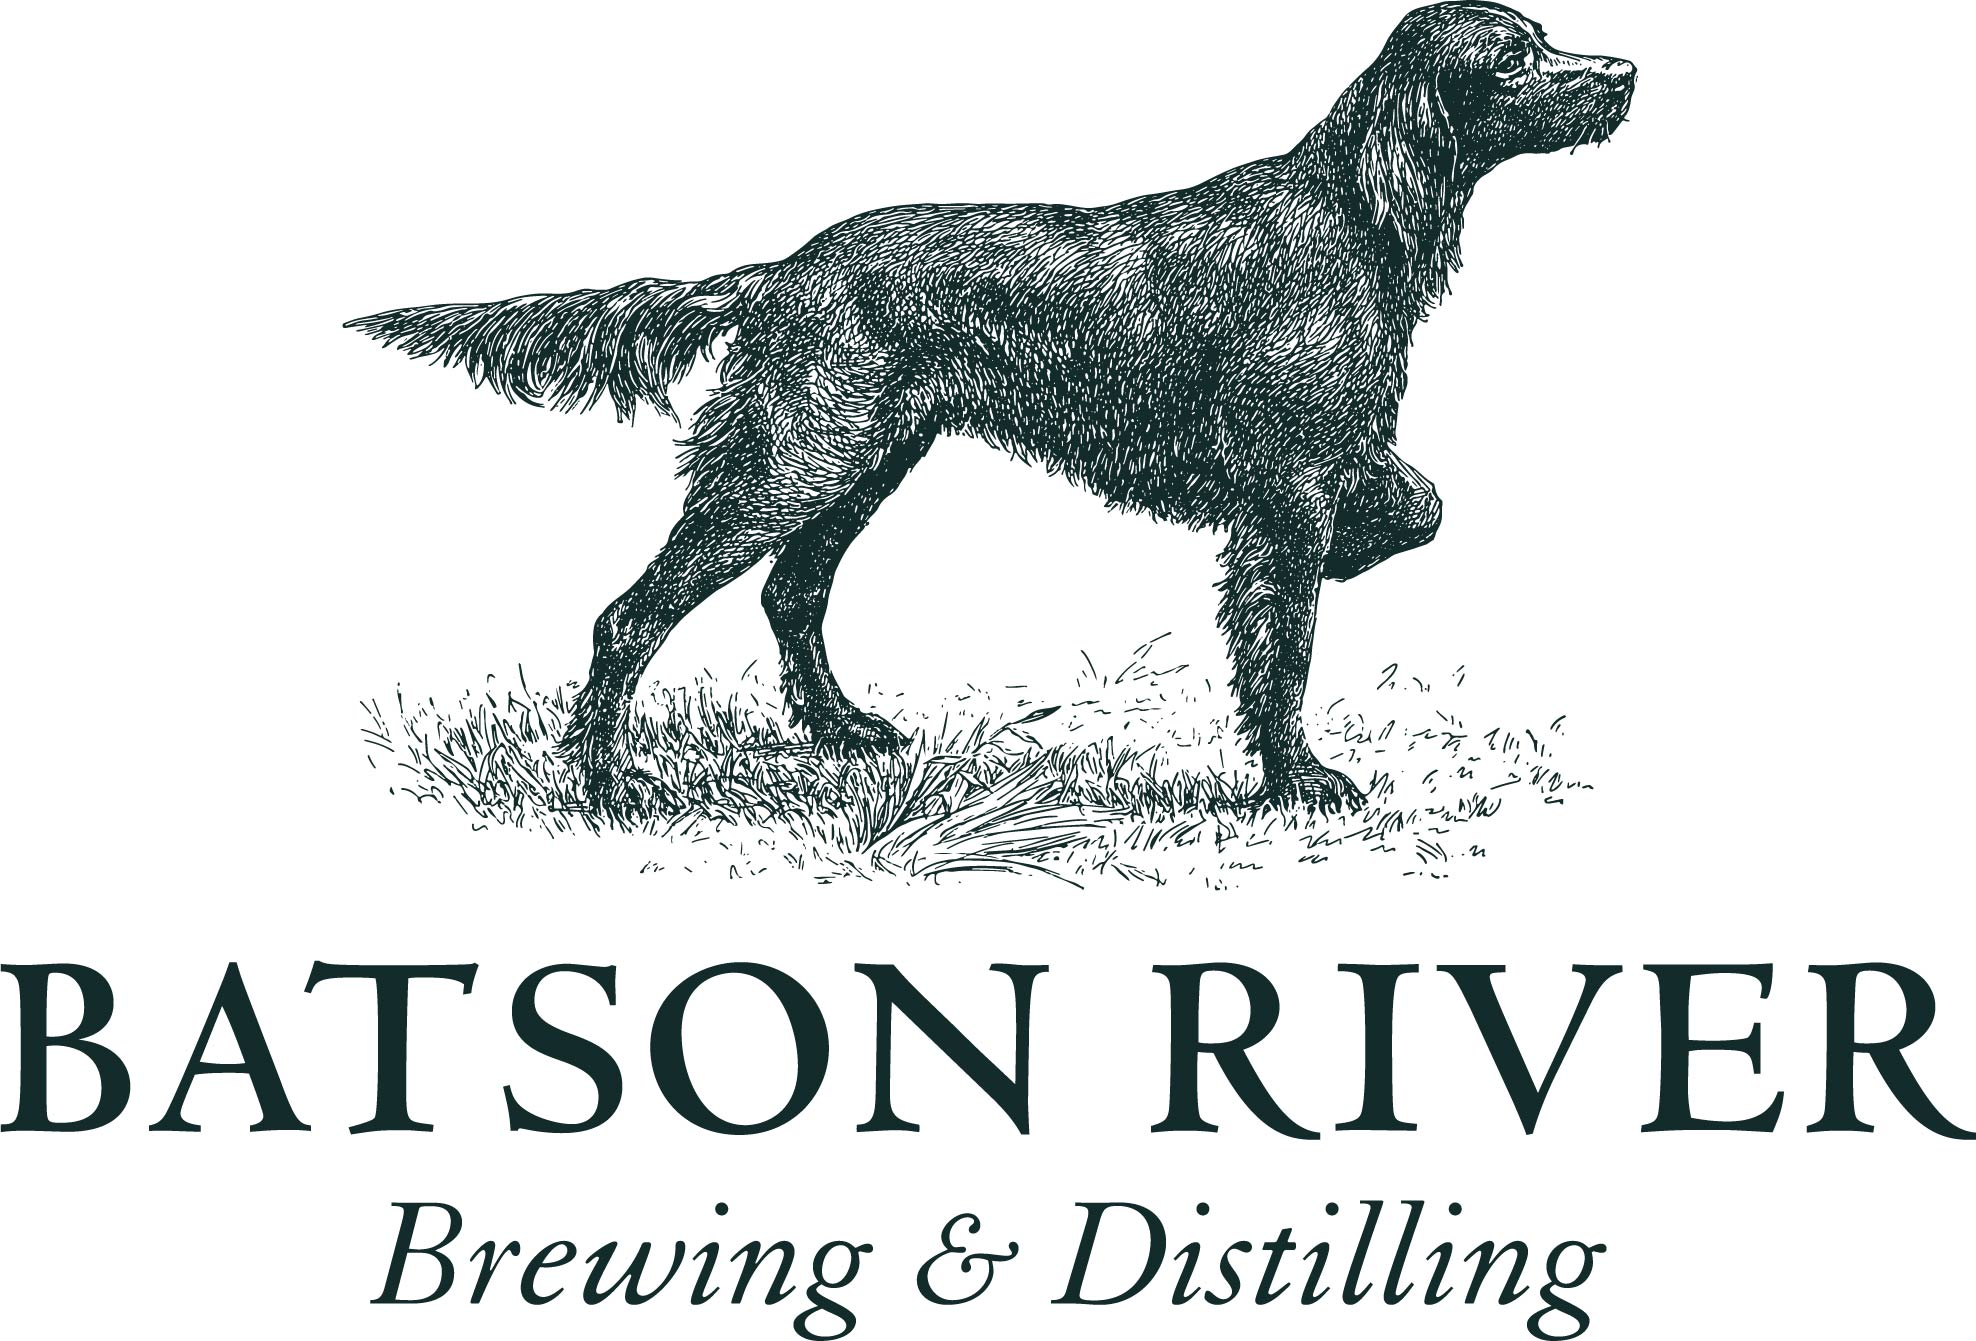 Batson River Brewing.jpg